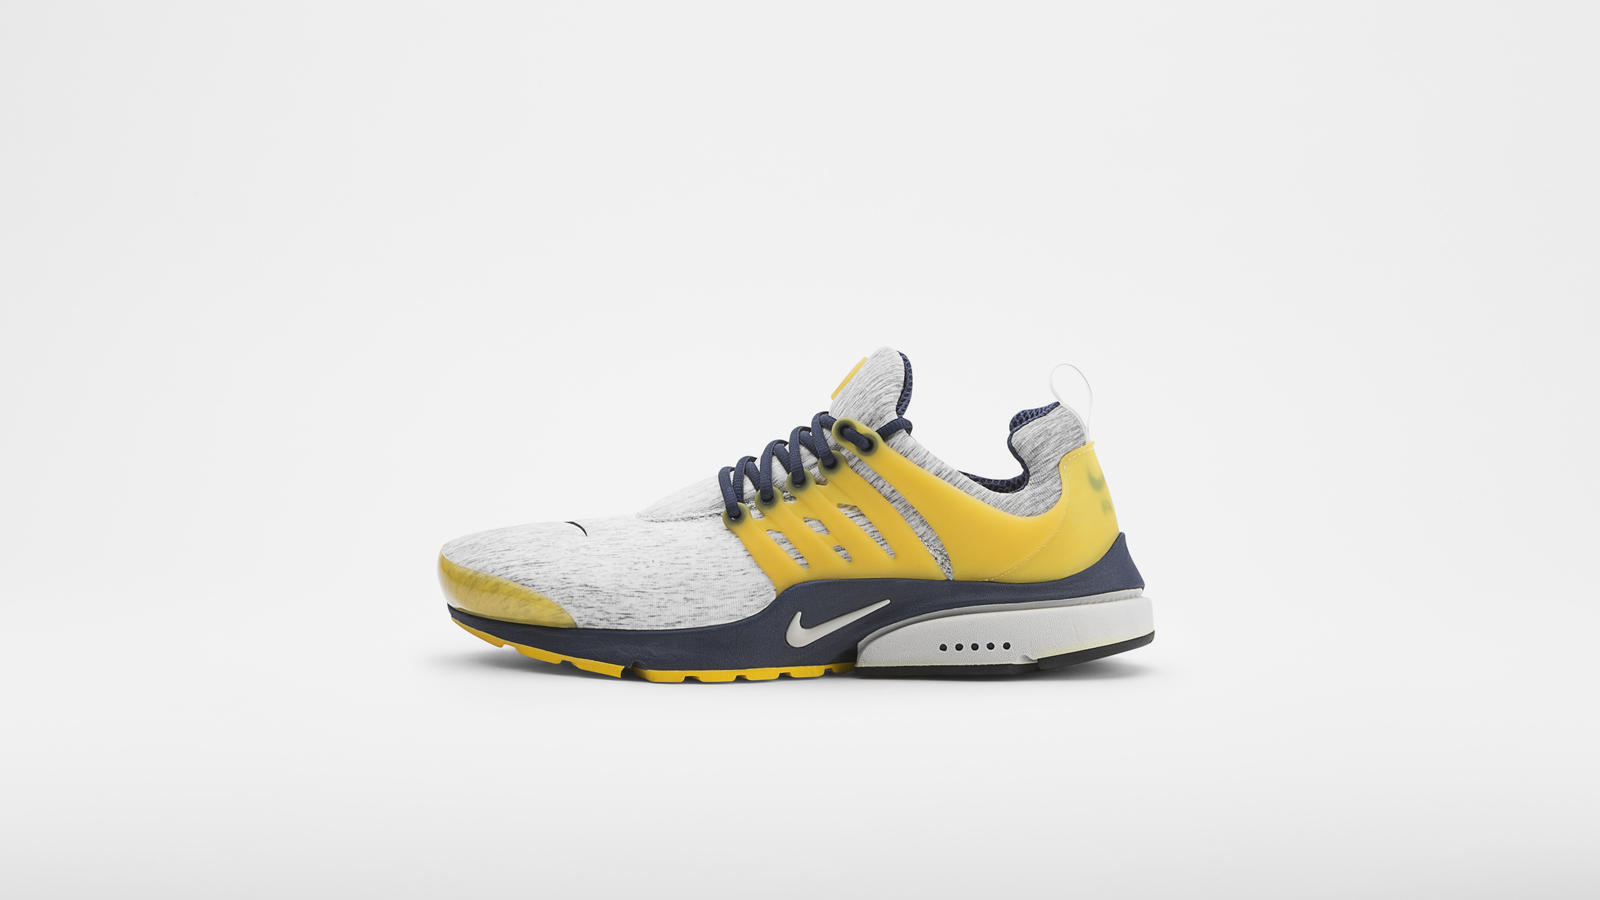 4b99ebac175a9 The Magic Behind the Nike Air Presto - Nike News